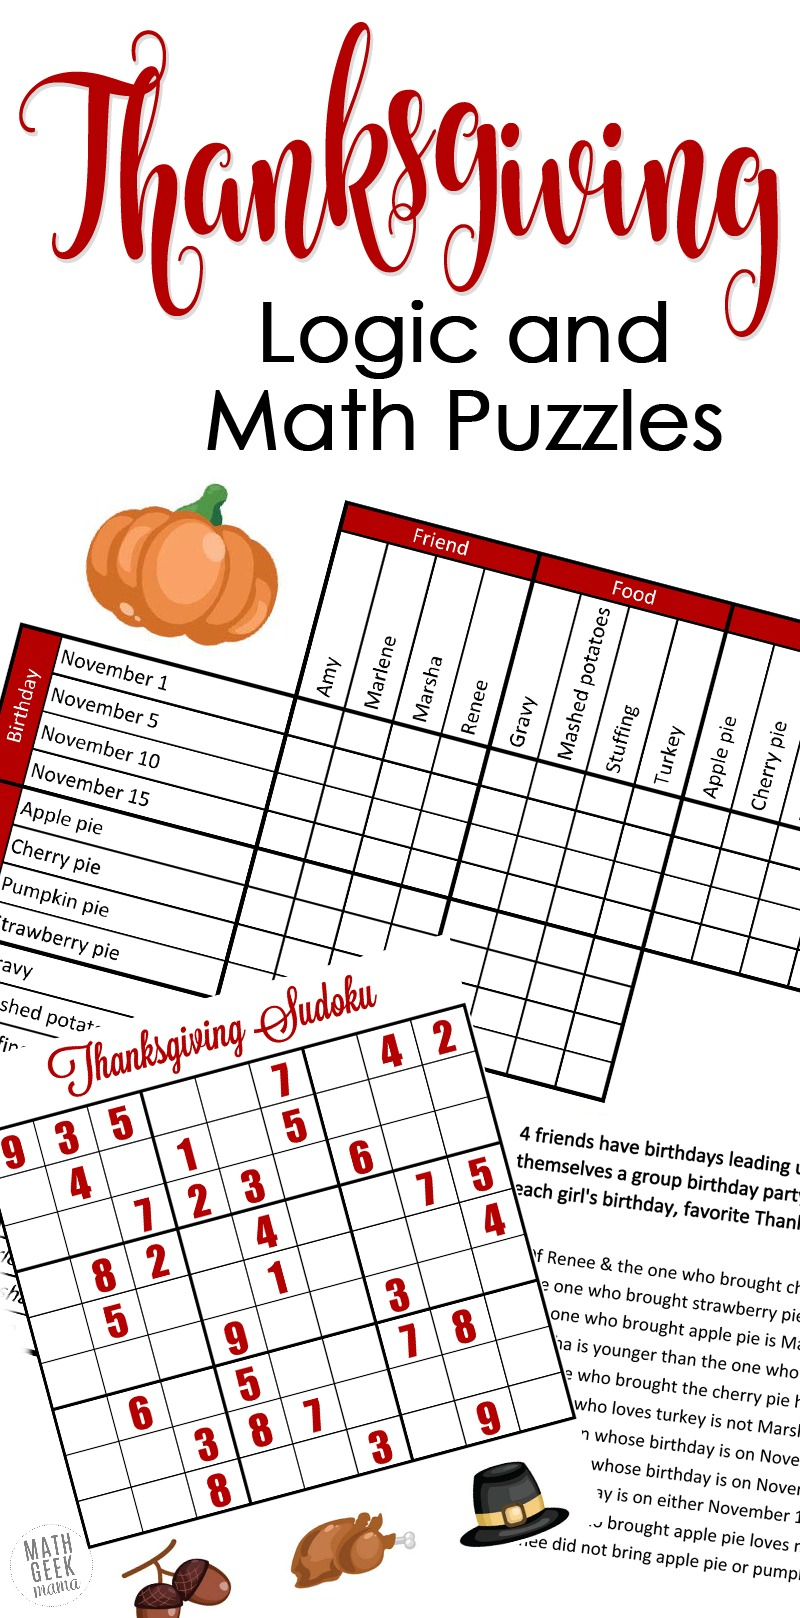 Free} Fun Thanksgiving Math Puzzles For Older Kids - Free Printable Critical Thinking Puzzles